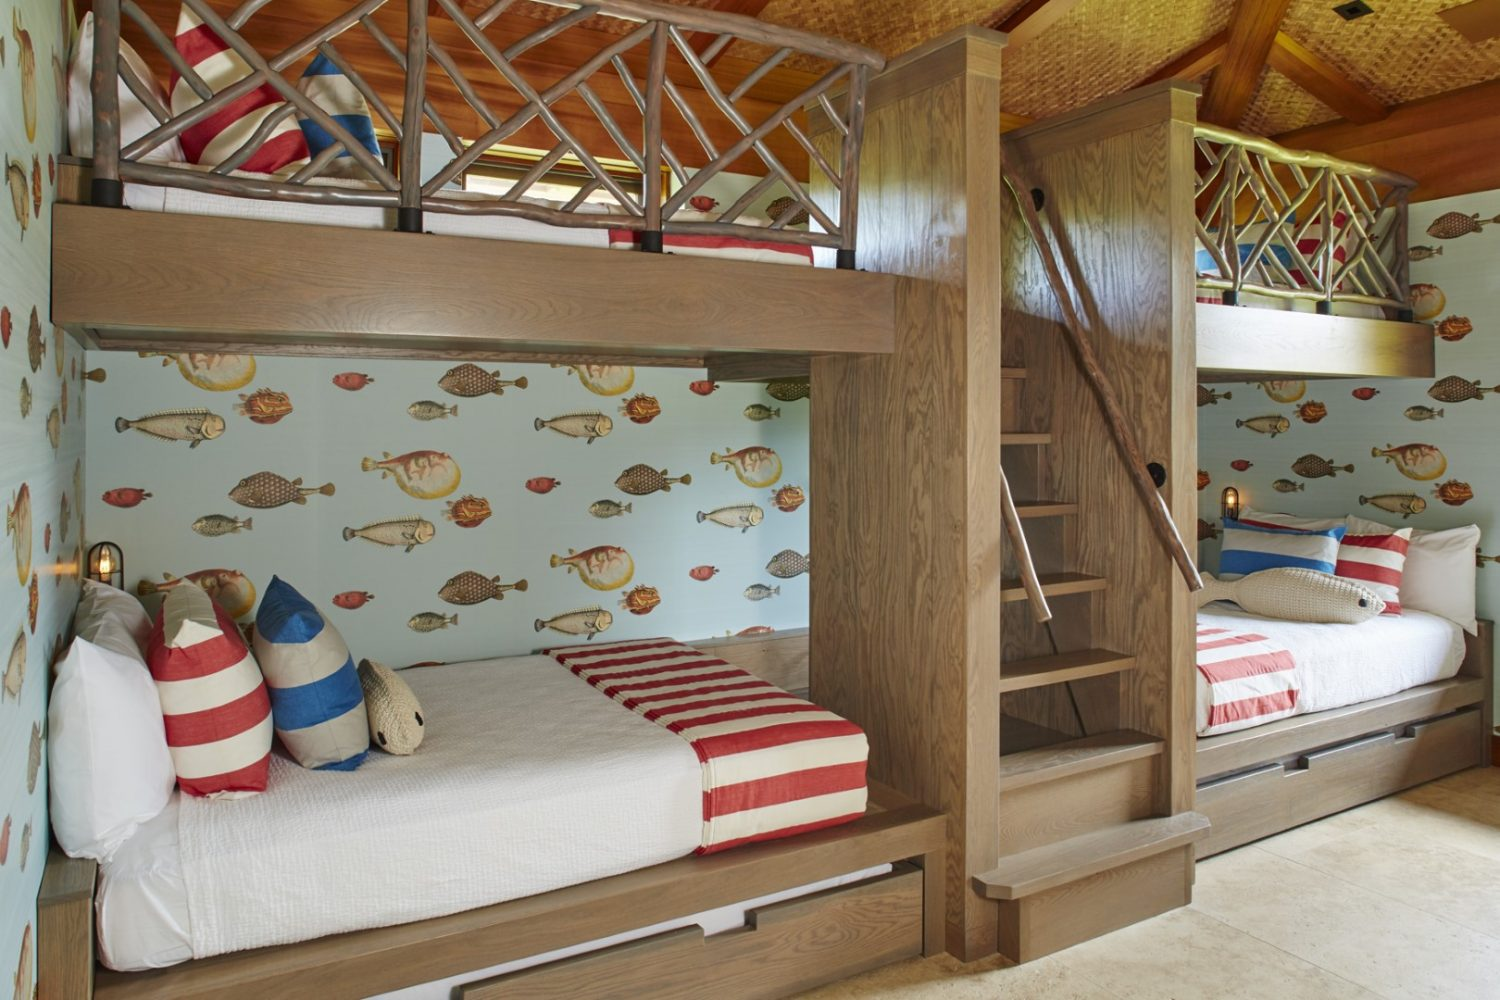 Malie Residence Kids Room Bunkbed - Philpotts Interiors